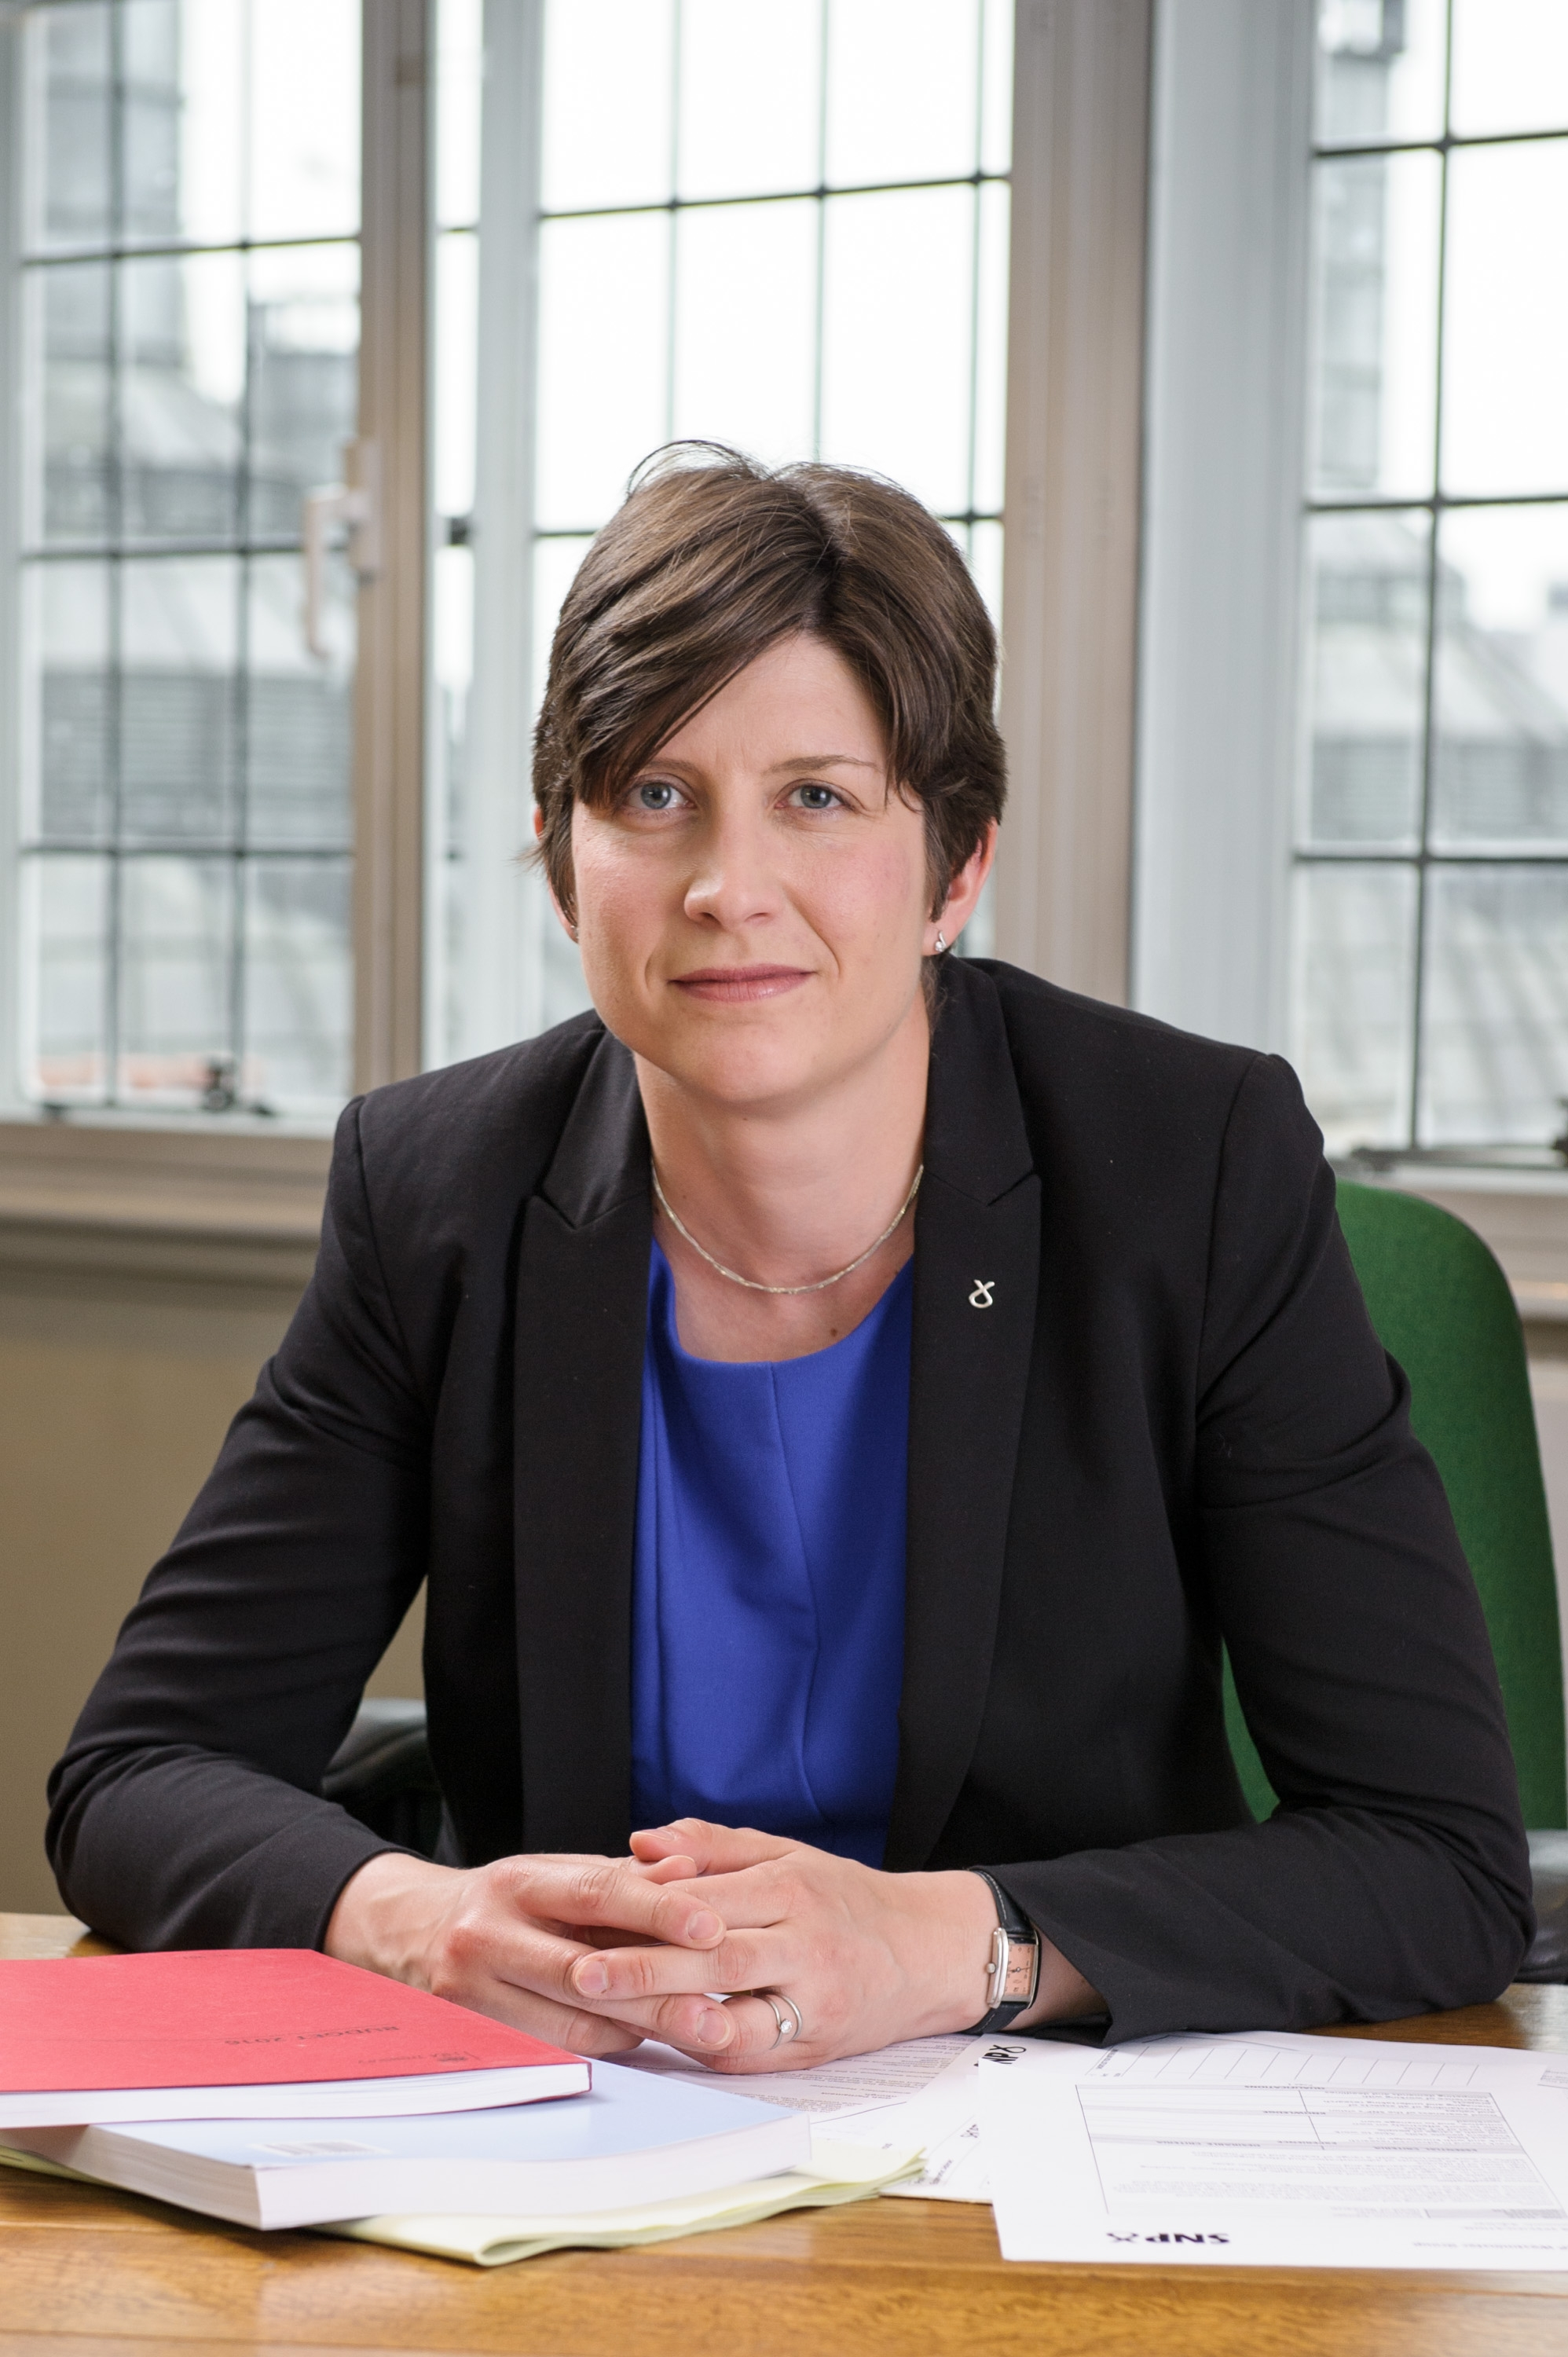 Thewliss speaks up for basketball in Scotland